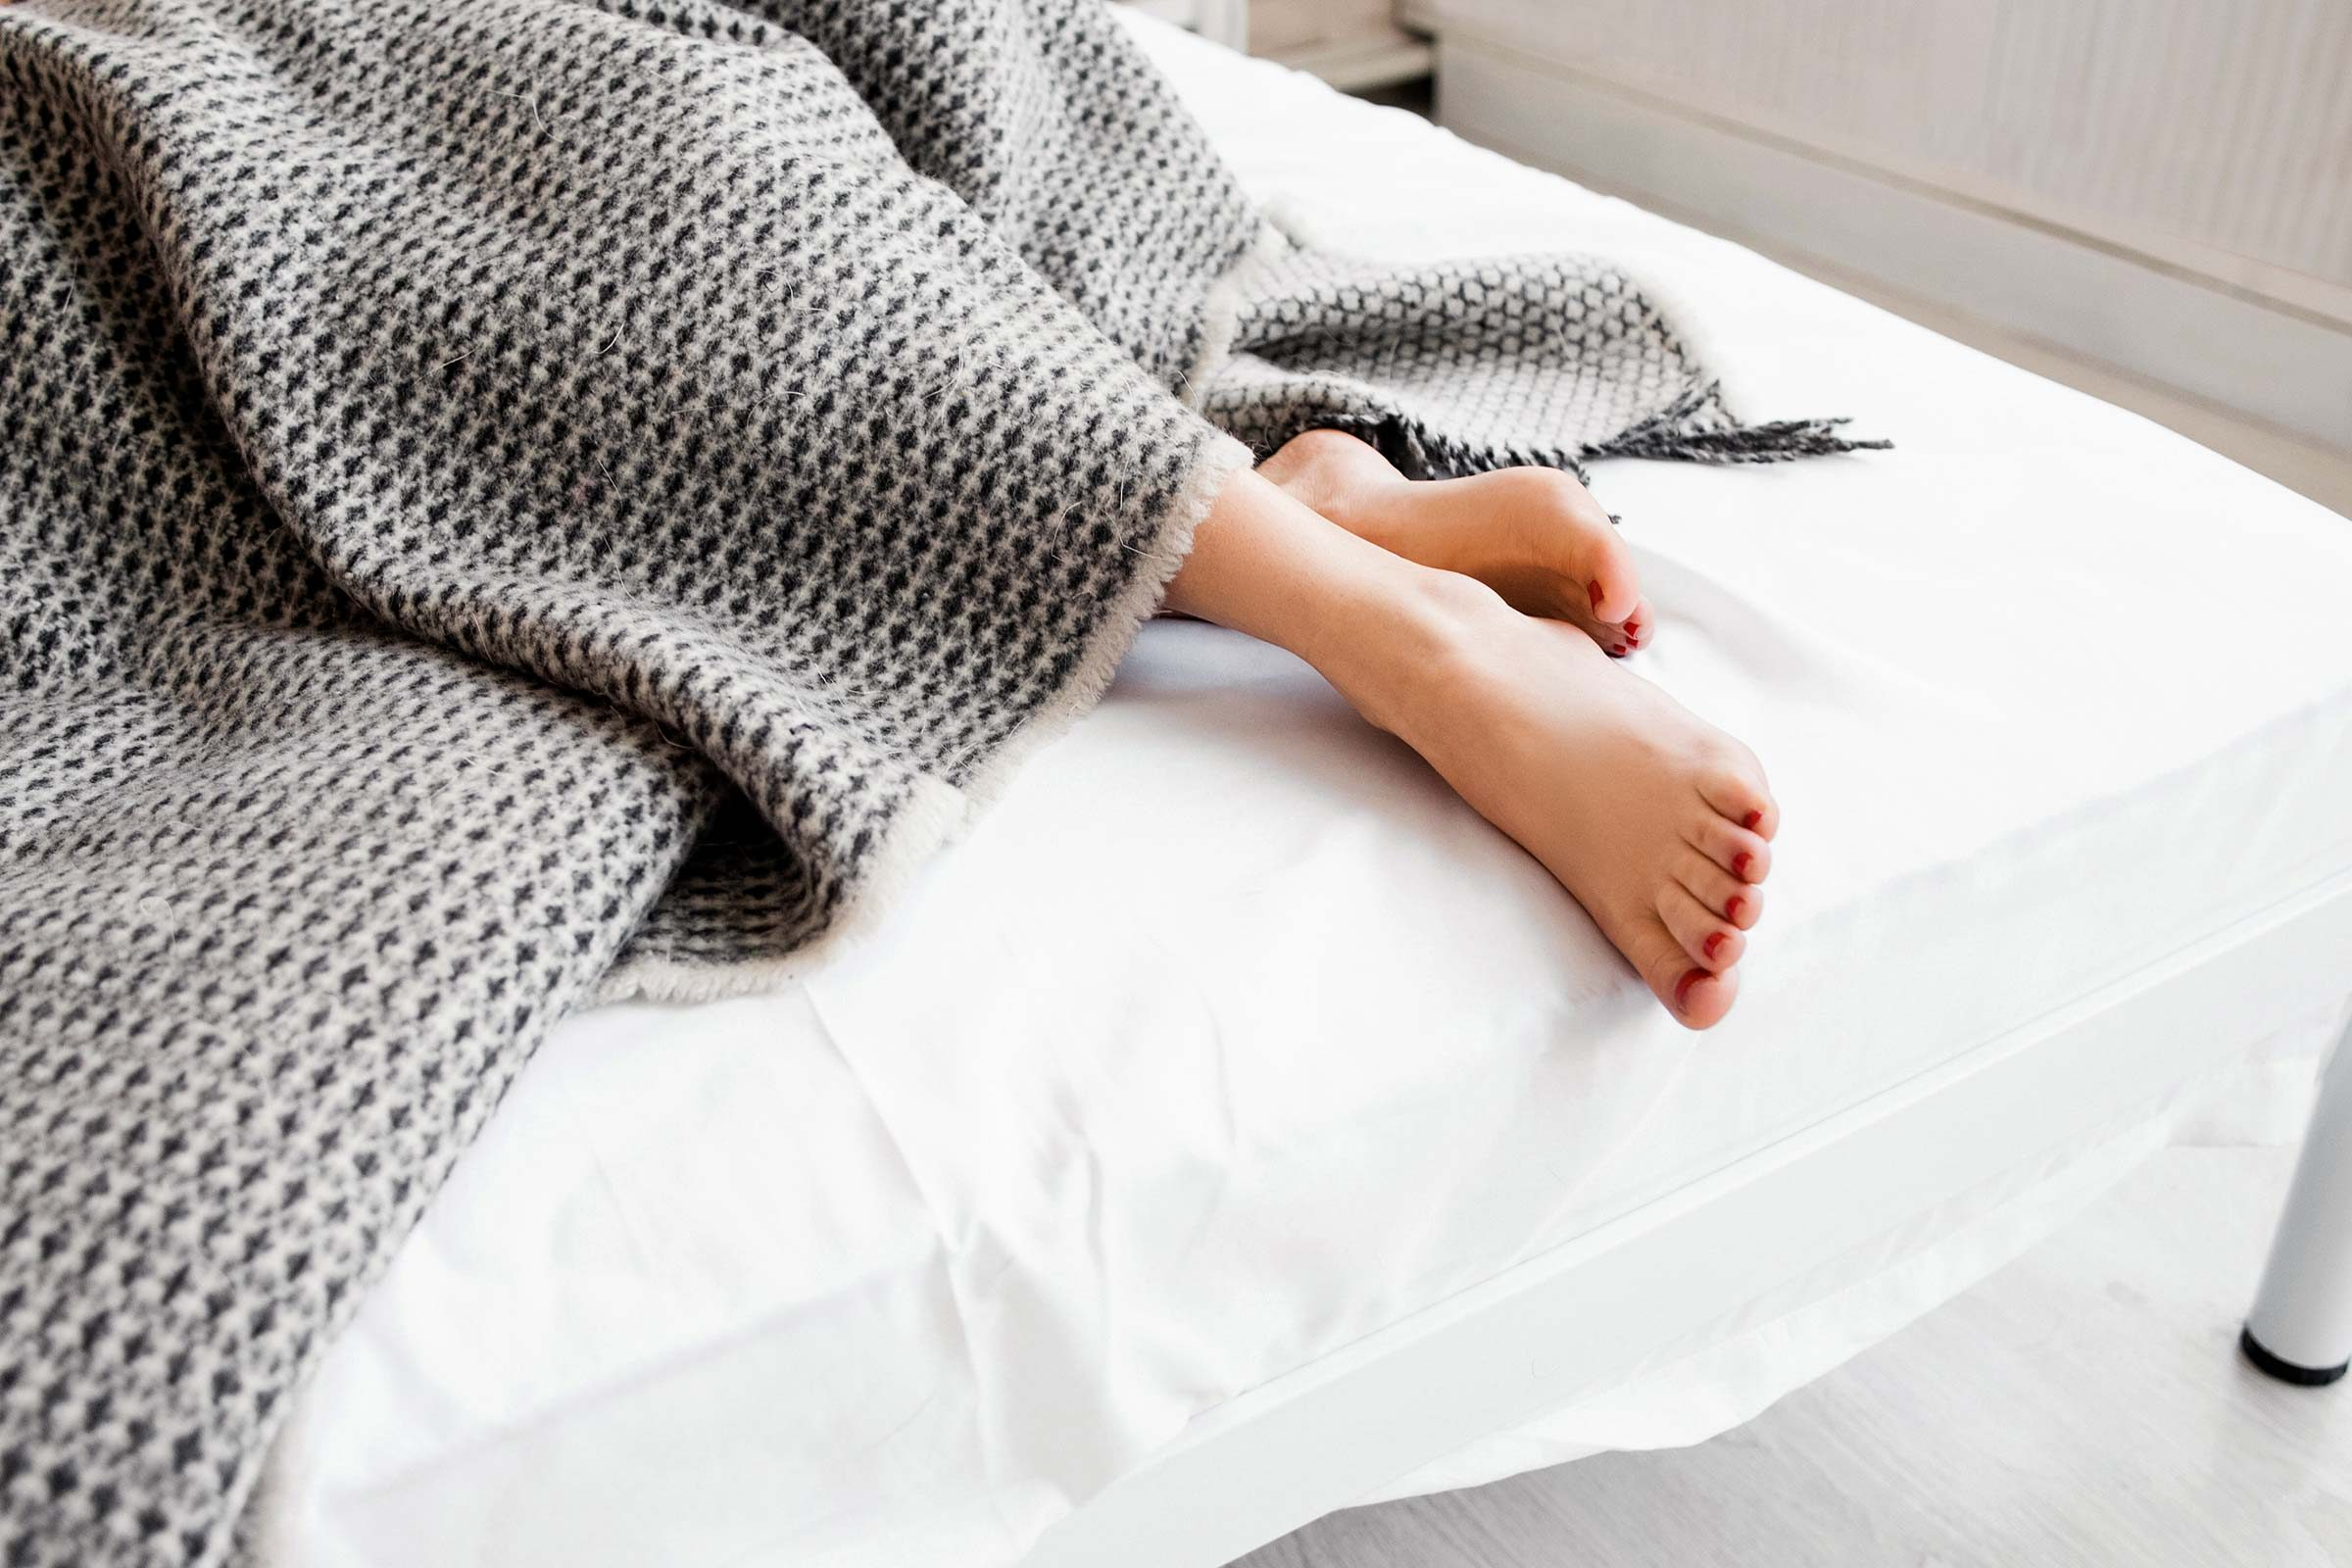 feet sticking out from blanket